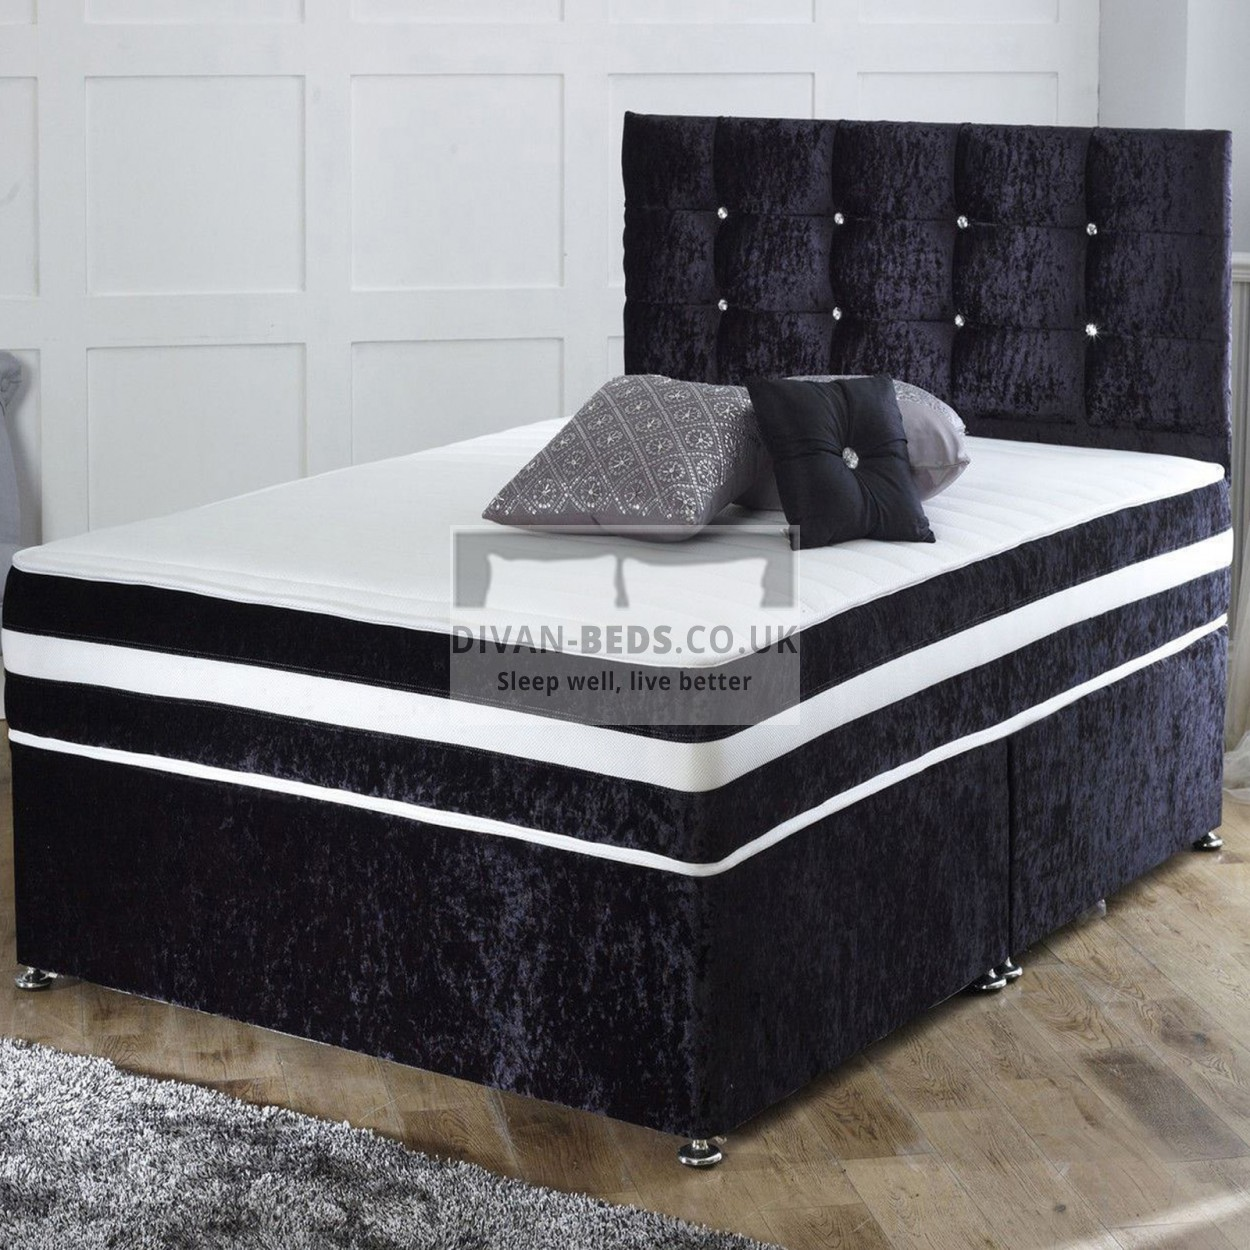 Divan Bed And Mattress Deals Richard Crushed Velvet Divan Bed With Orthopaedic Spring Mattress